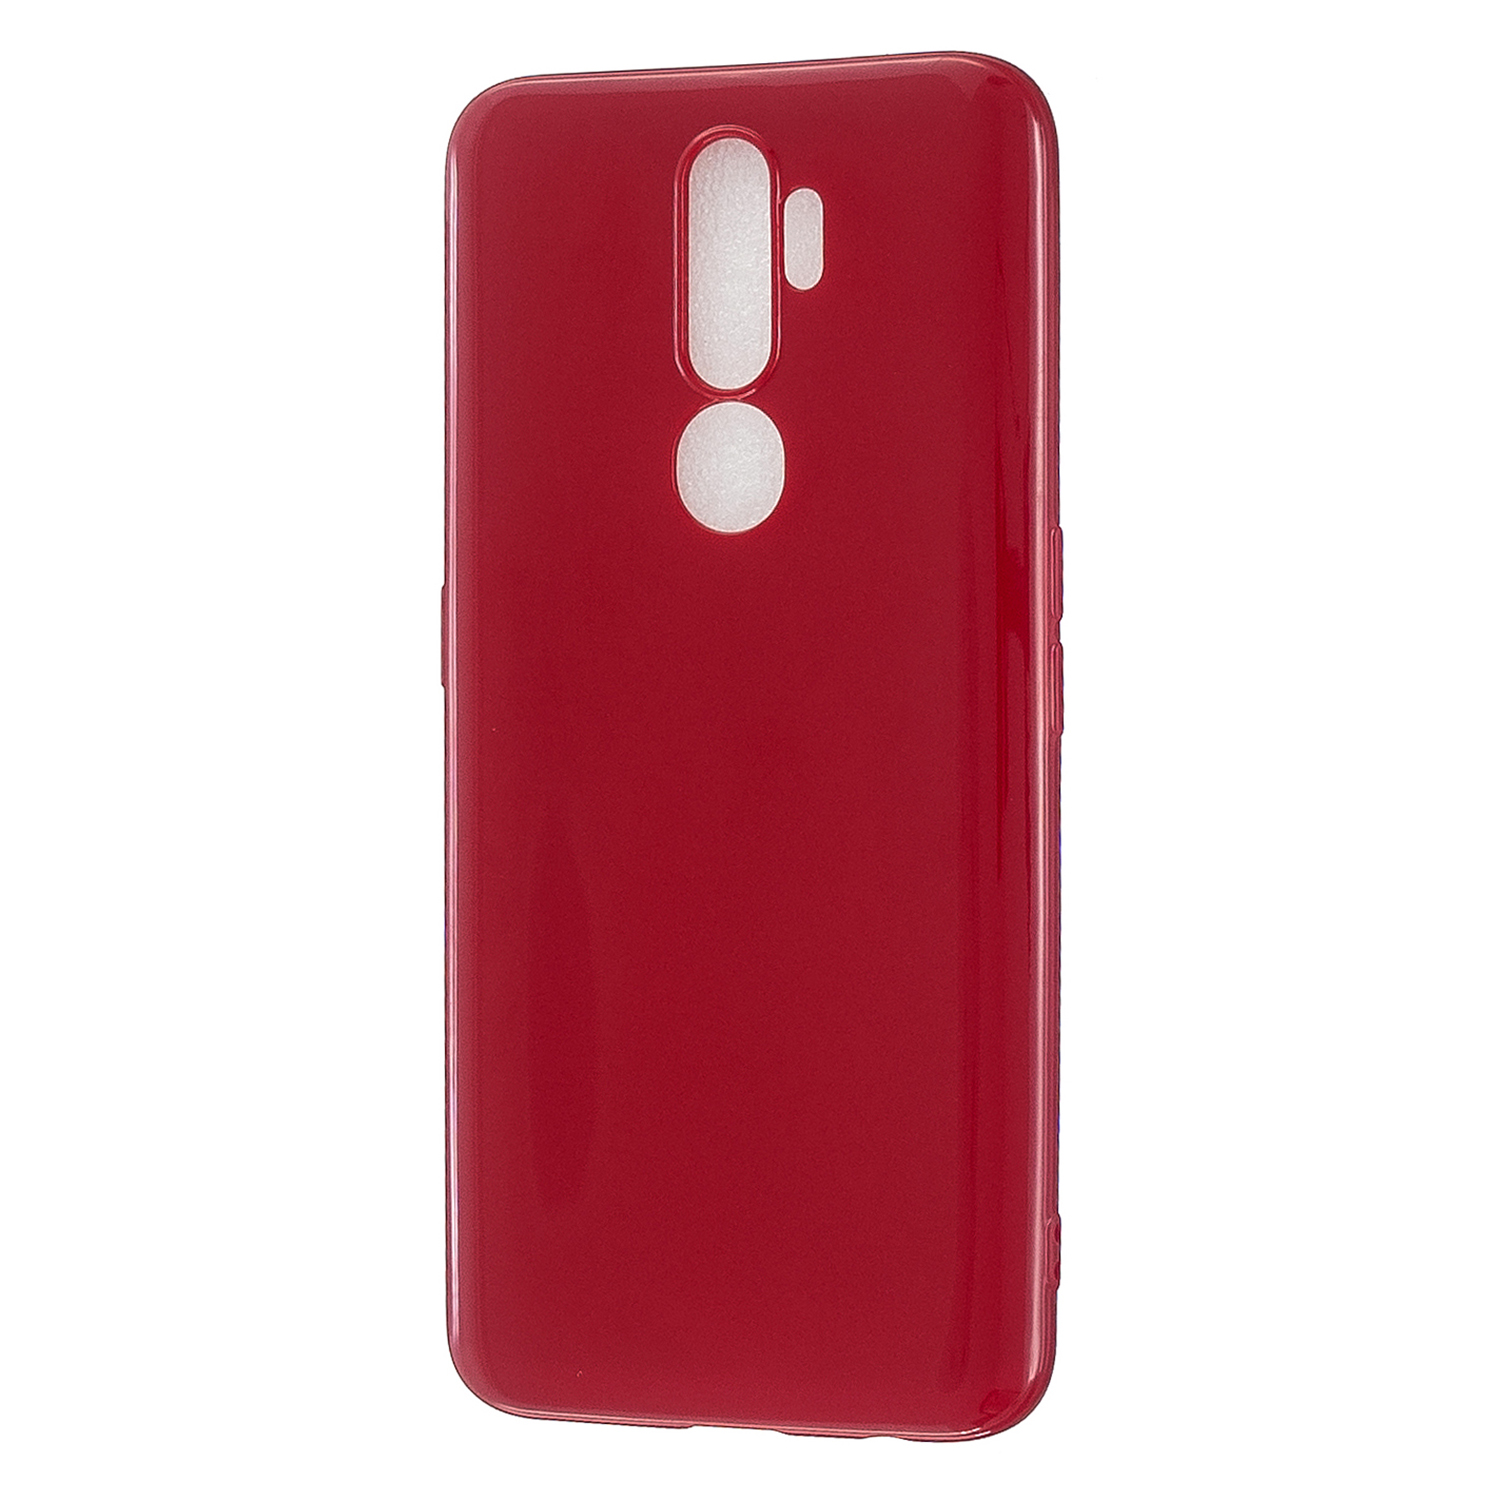 For OPPO A5/A3S/A9 2020 Cellphone Cover Soft Touch Anti-scratch Shockproof TPU Mobile Phone Case  Rose red